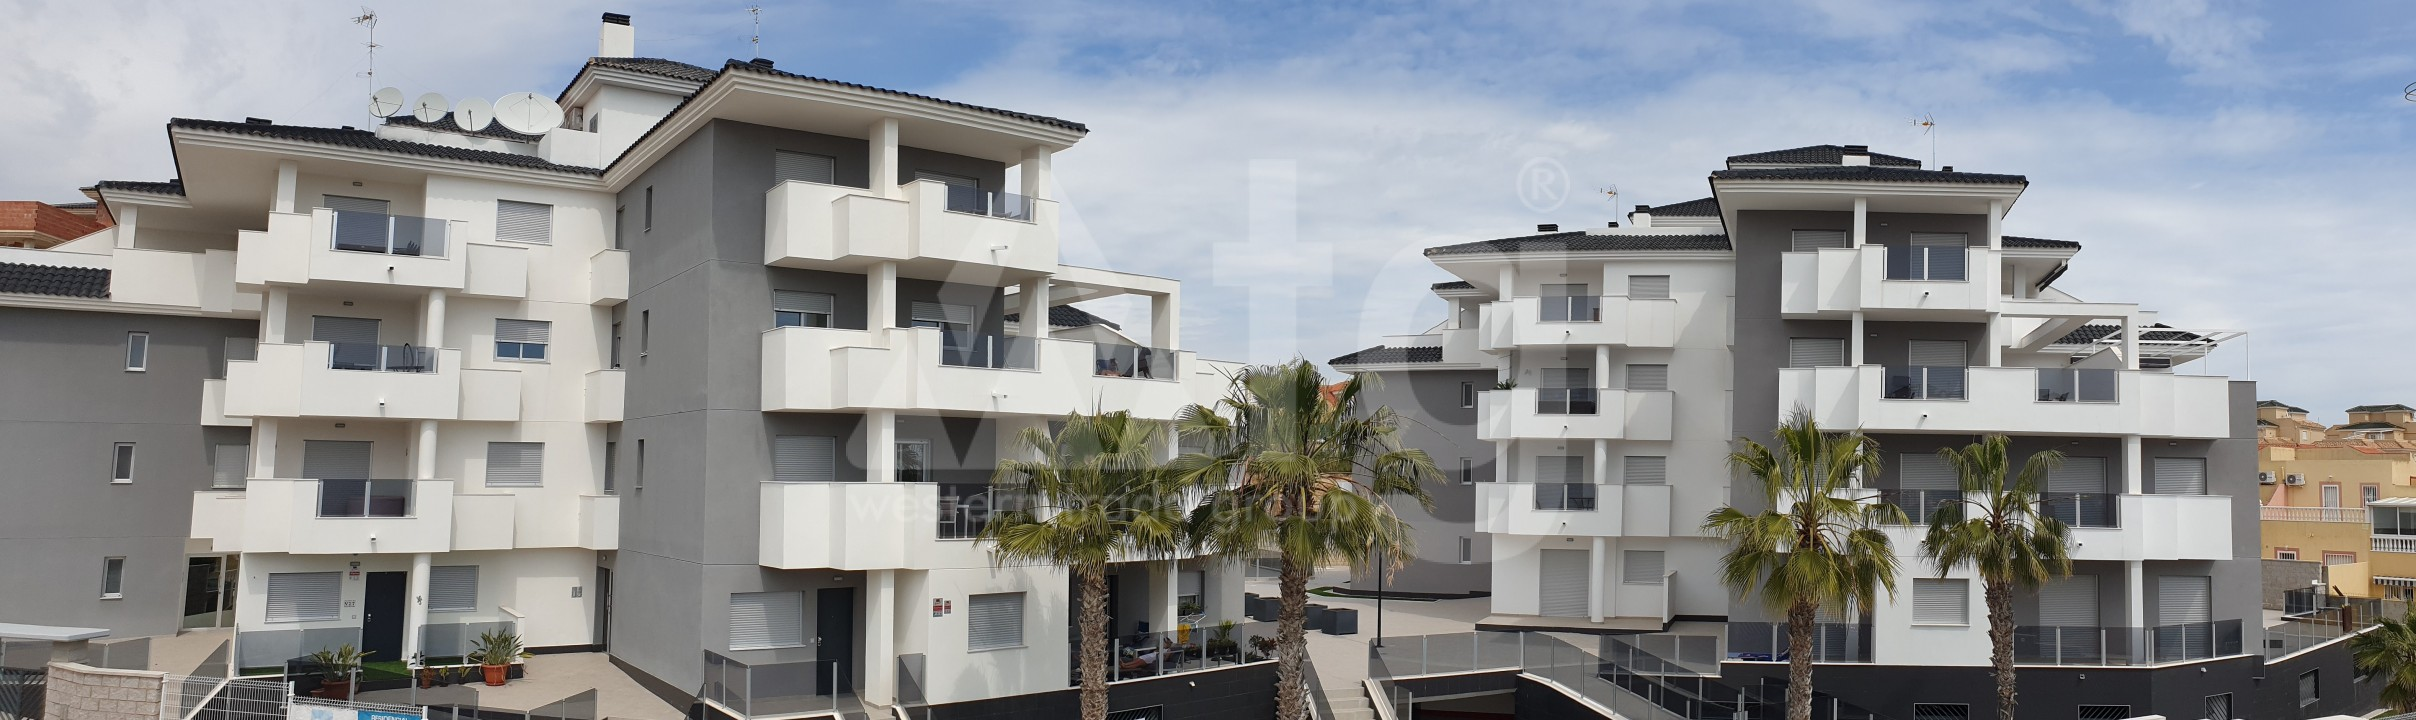 4 bedroom Apartment in Torrevieja  - AG773 - 1